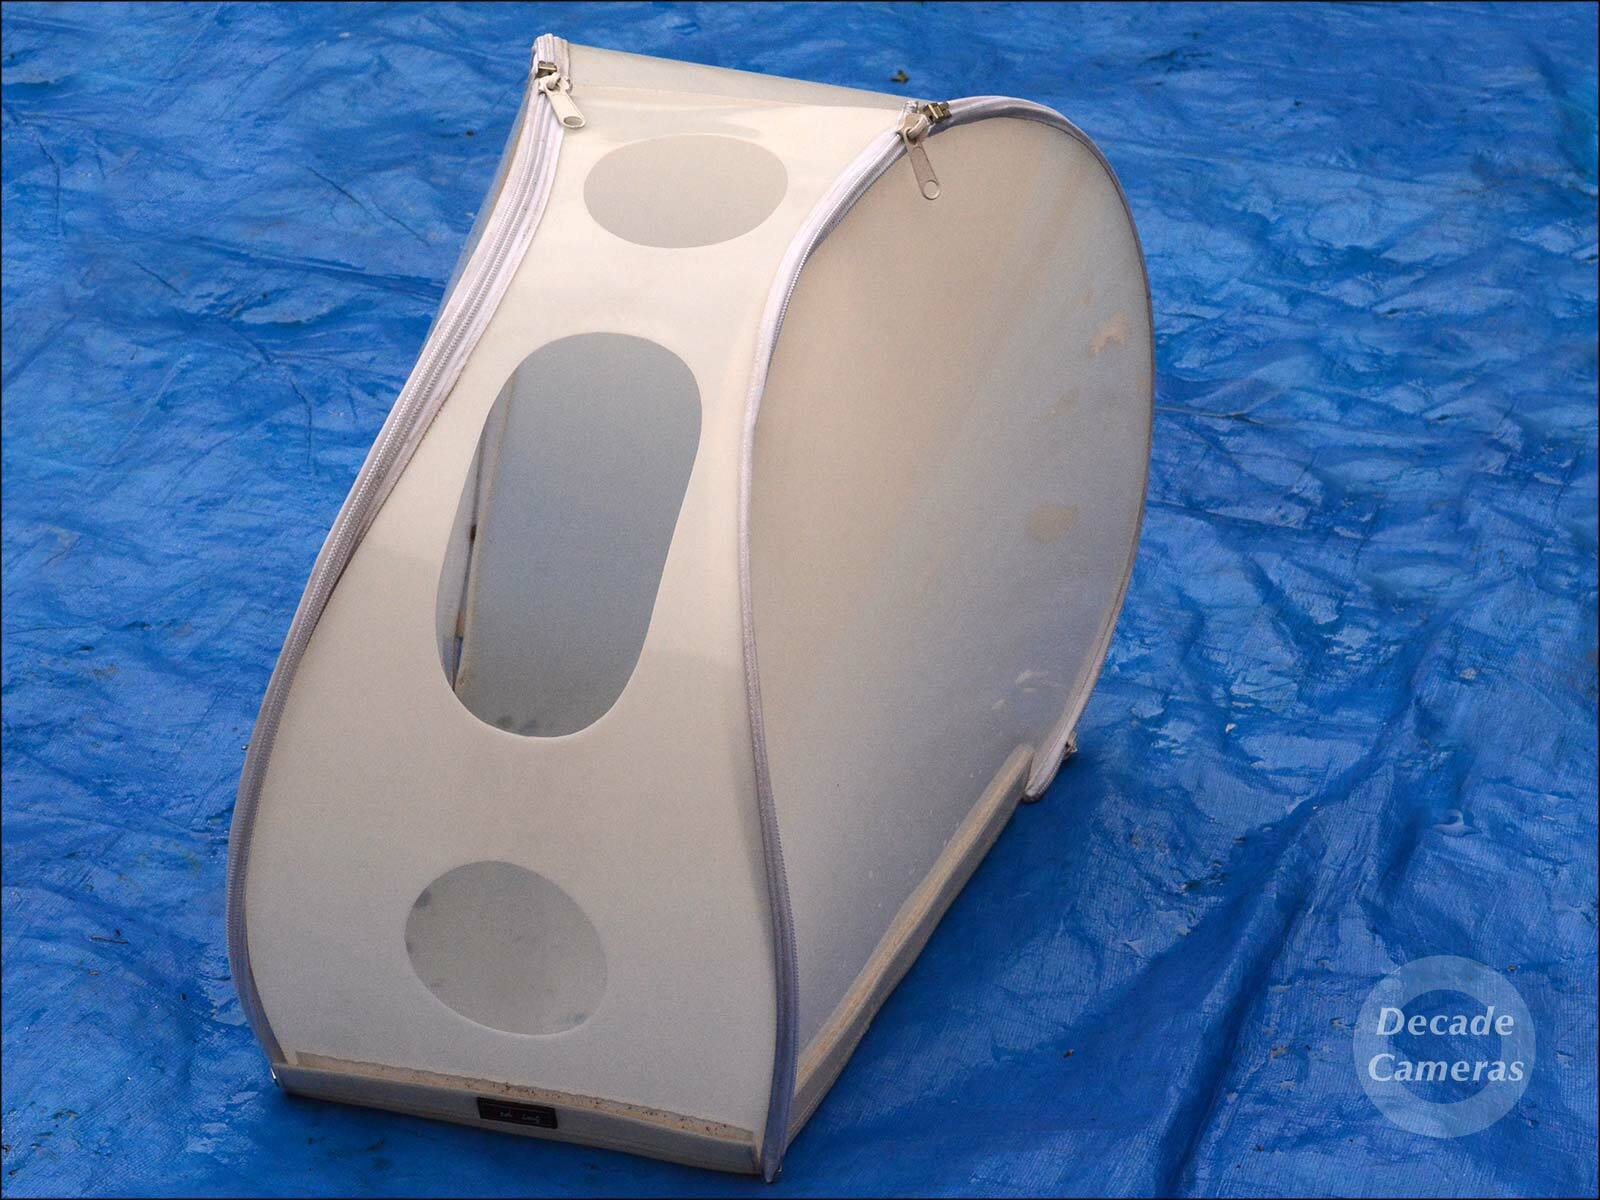 Image of 0000 Calumet Cocoon Photographic Light Tent 70